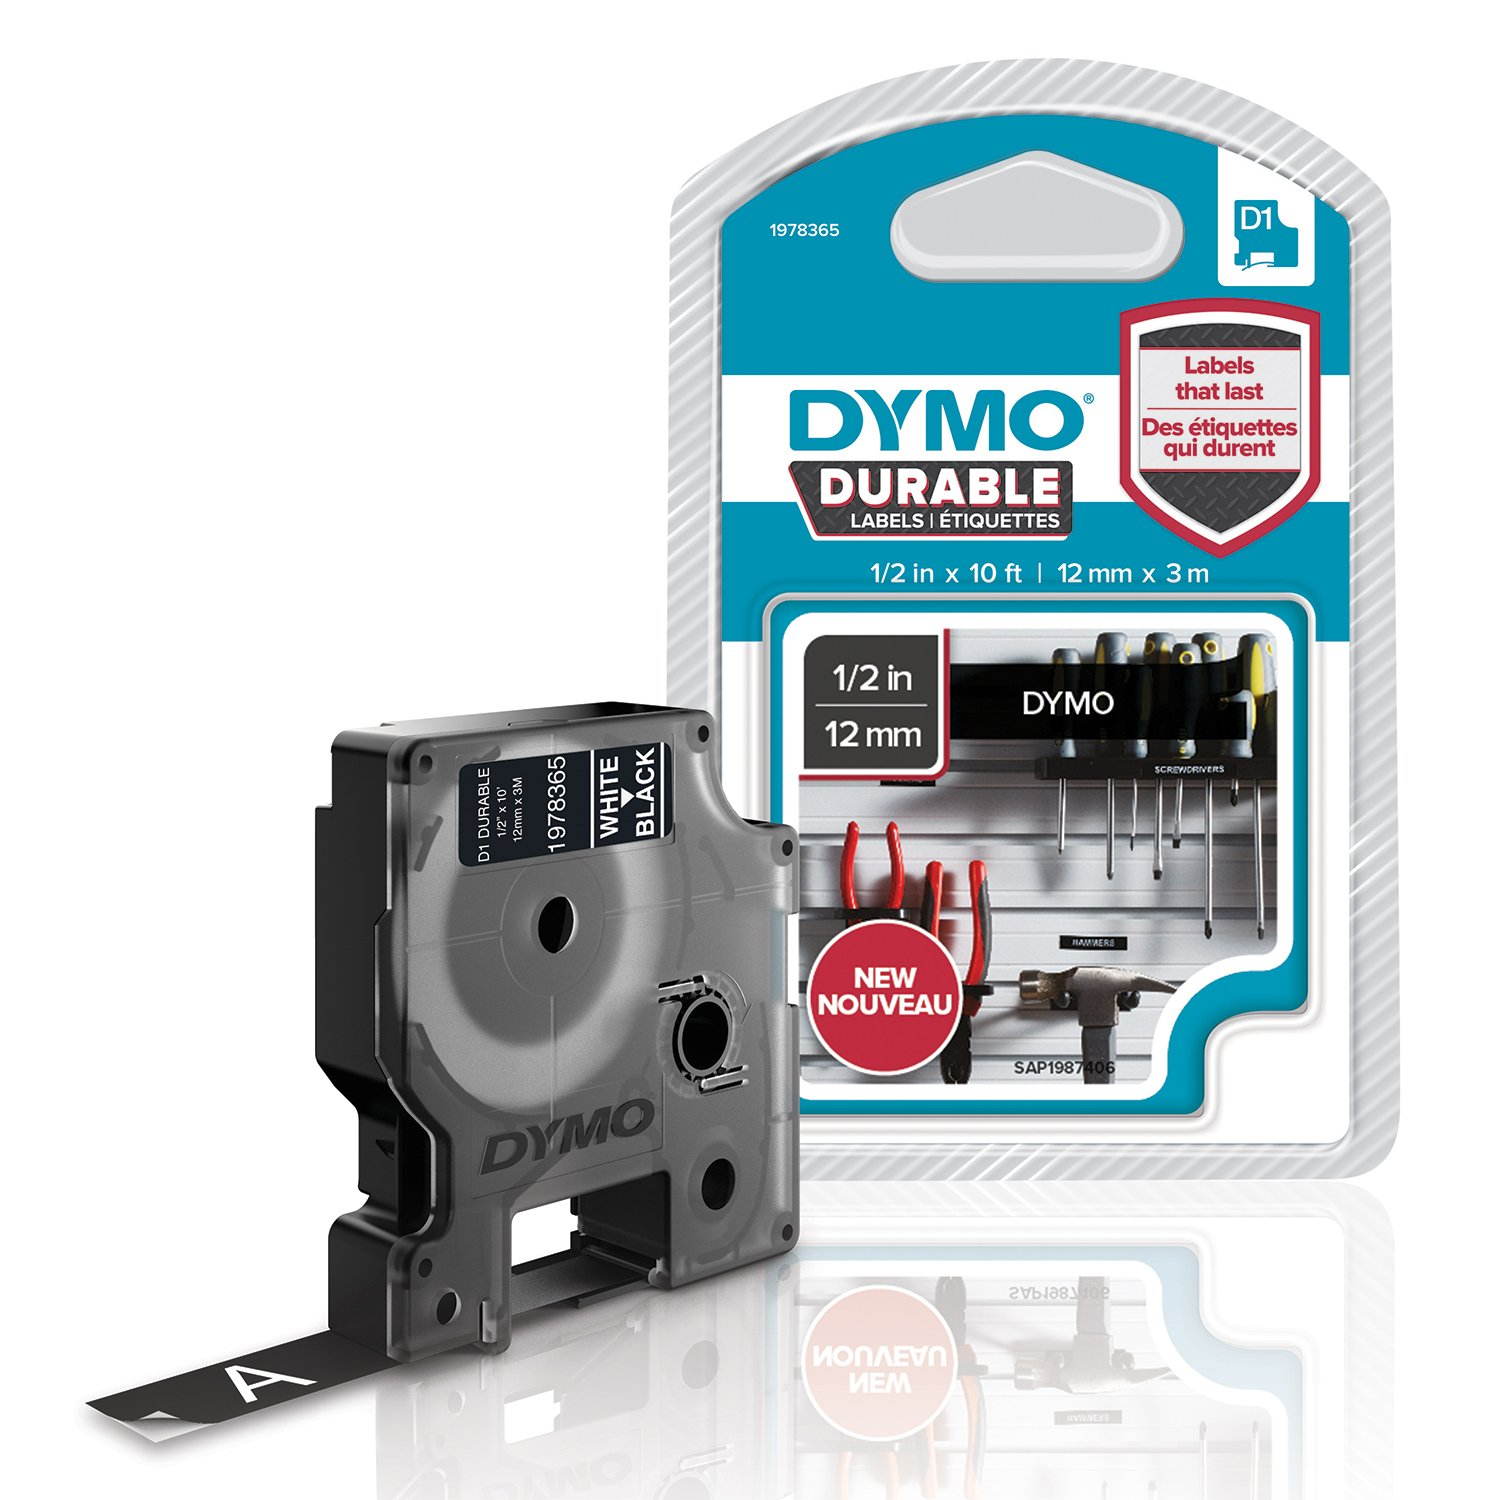 DYMO D1 Durable Labeling Tape for LabelManager Label Makers, White Print on Black Tape, 1/2'' W x 10' L, 1 Cartridge (1978365)